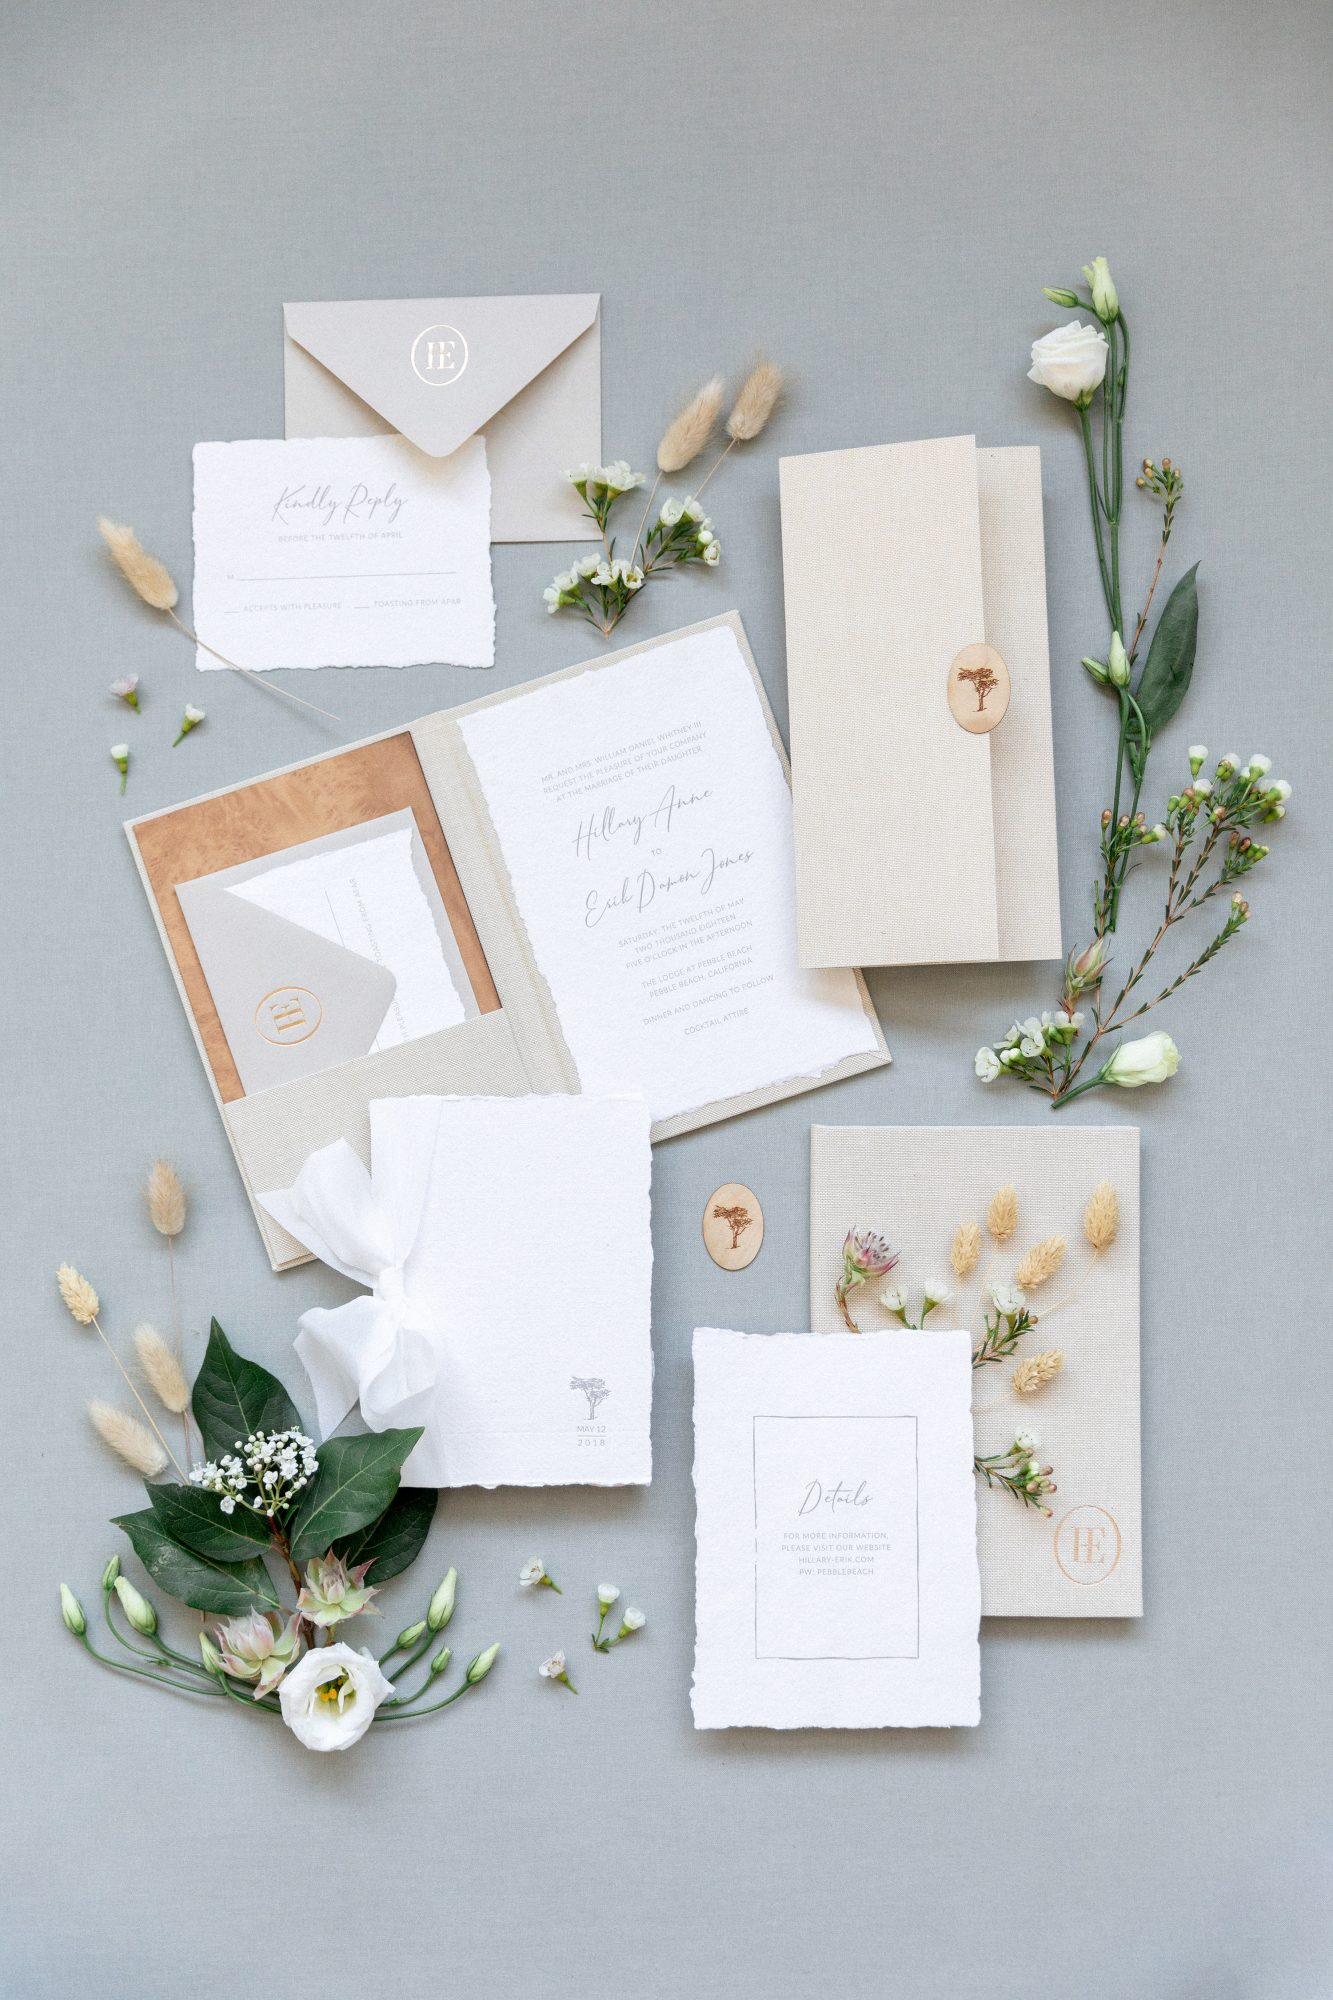 booklet stationery idea with texture and golf foil accents